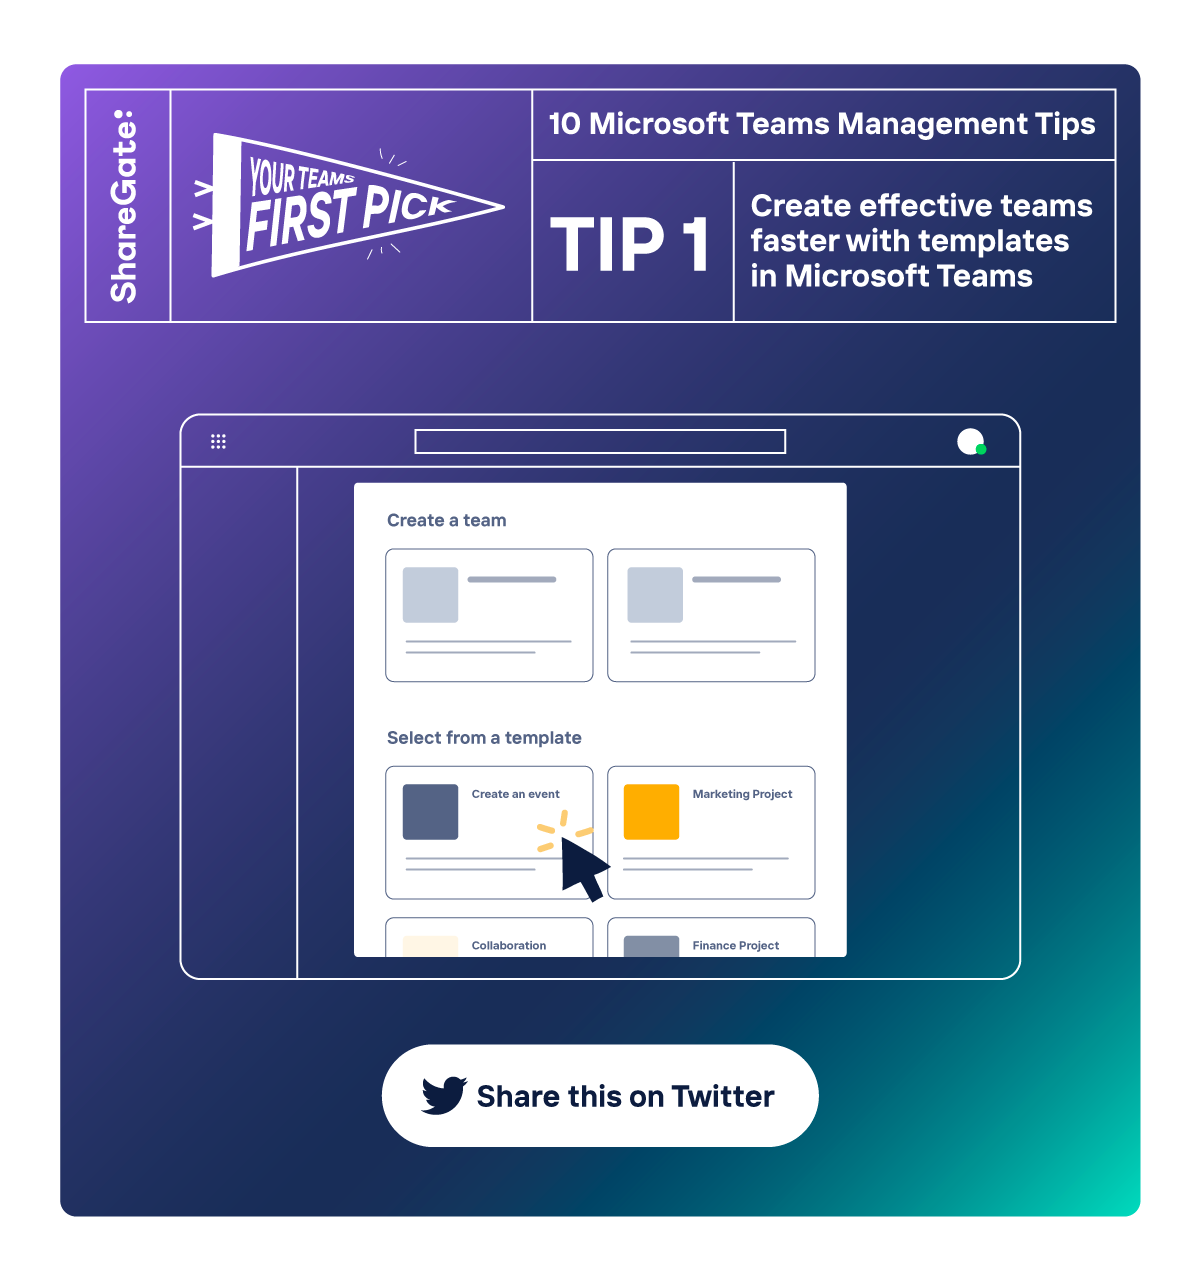 Illustrated infographic showing tip 1: Create effective teams faster with templates.